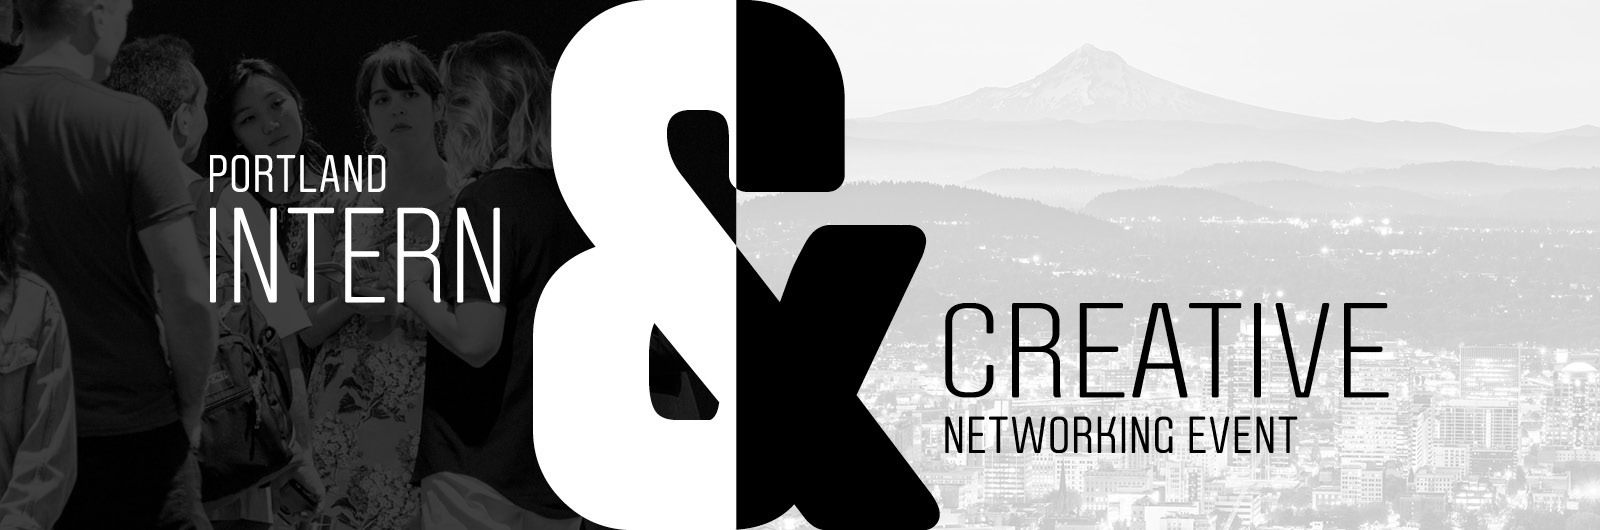 Portland Intern and Creative - Networking Event 2020